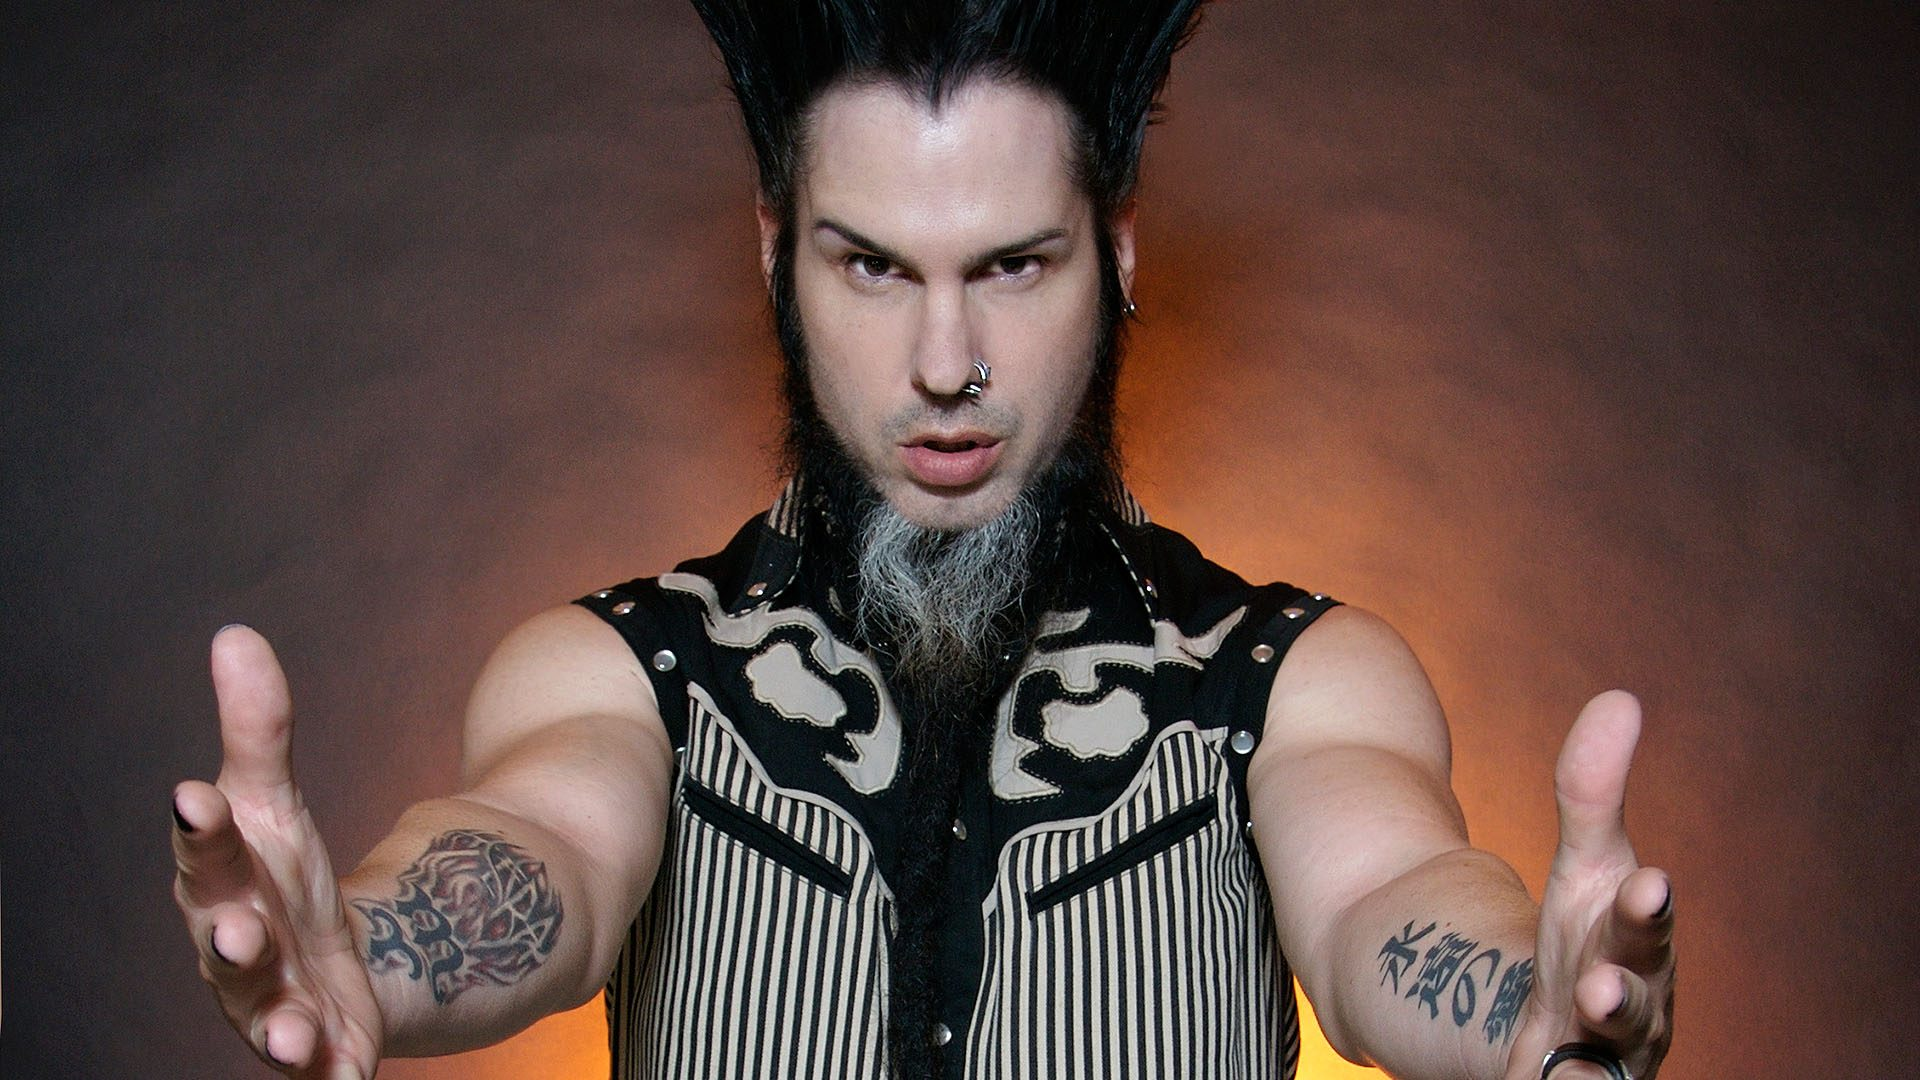 Static-X Announces World Tour and New Album Project Regeneration Featuring Final Vocal and Musical Work of the Late Wayne Static